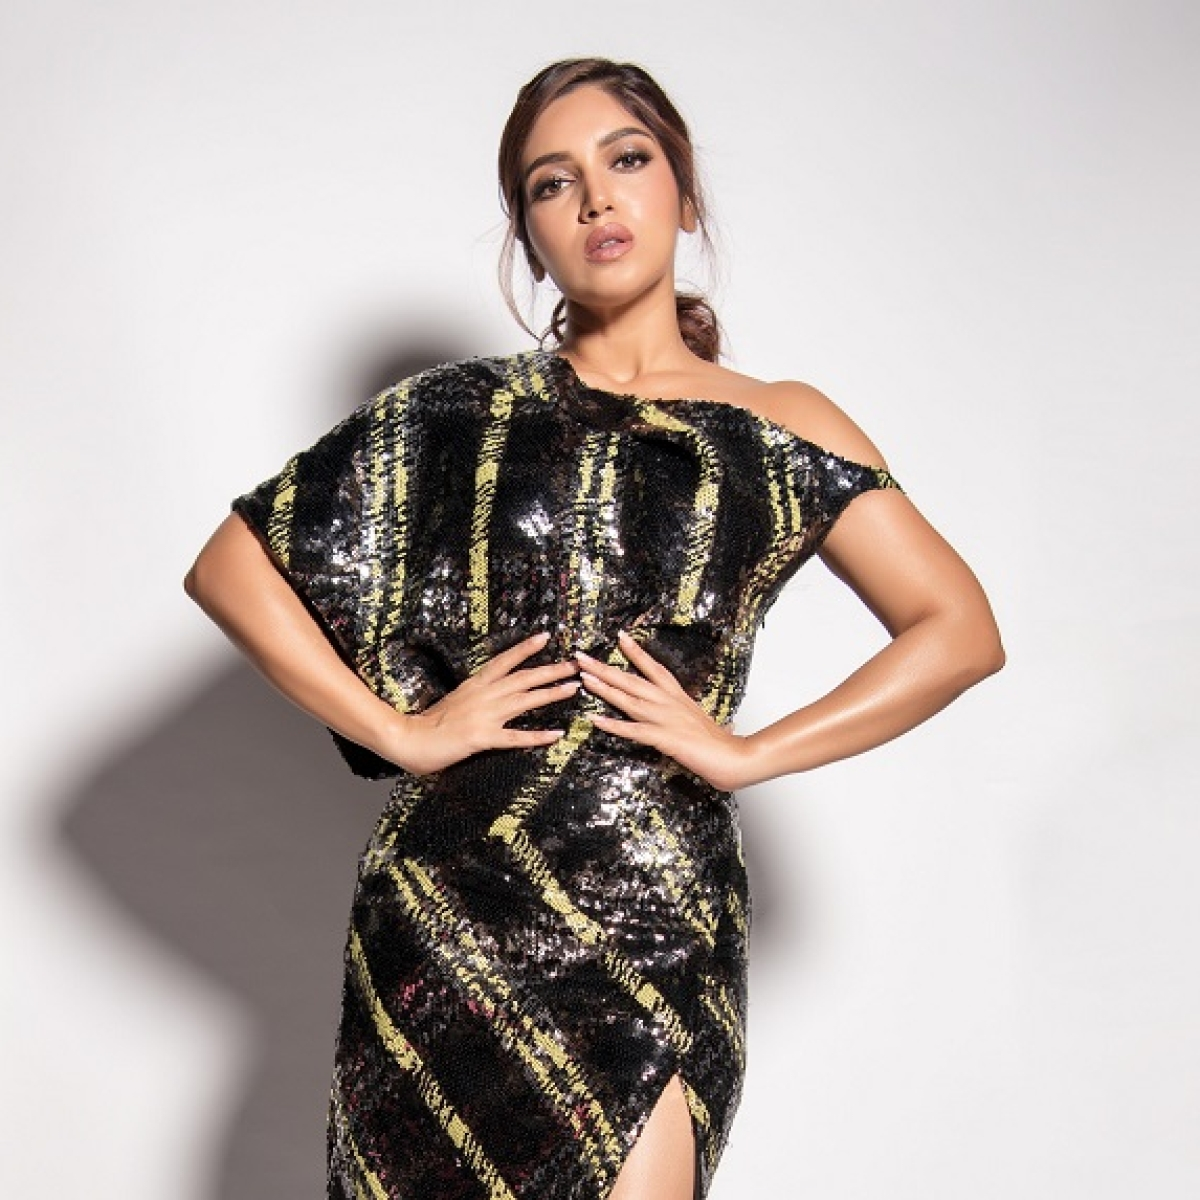 Bhumi Pednekar opens up on 'Durgamati', remakes, gender stereotypes and more...